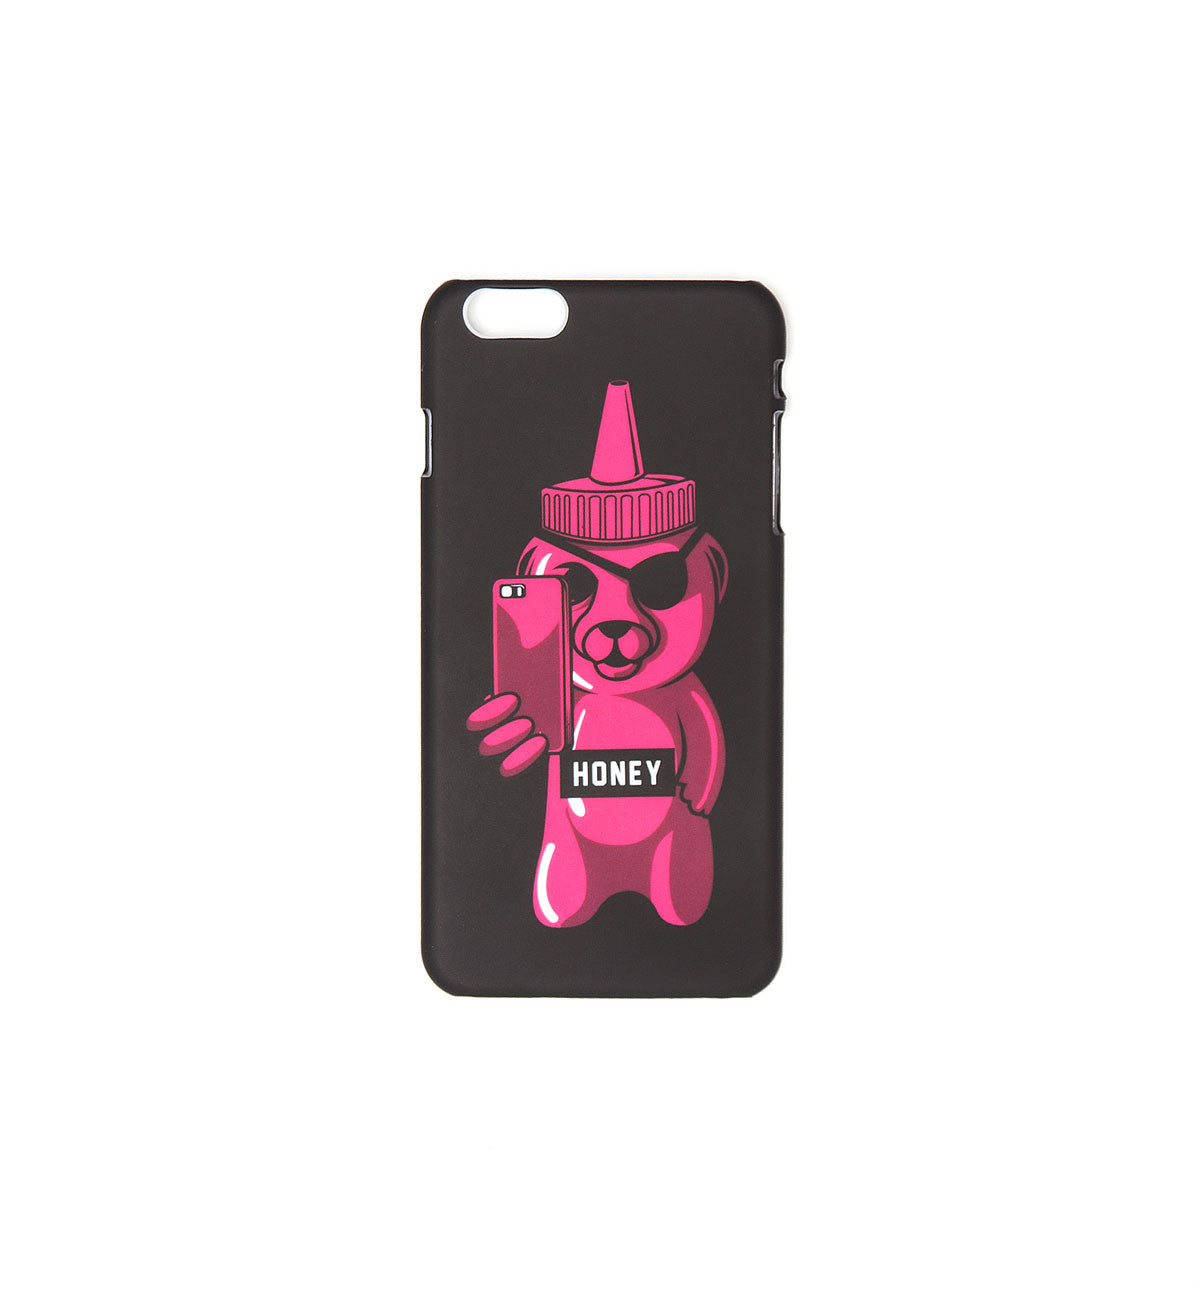 SELFIE IPHONE 5 CASE